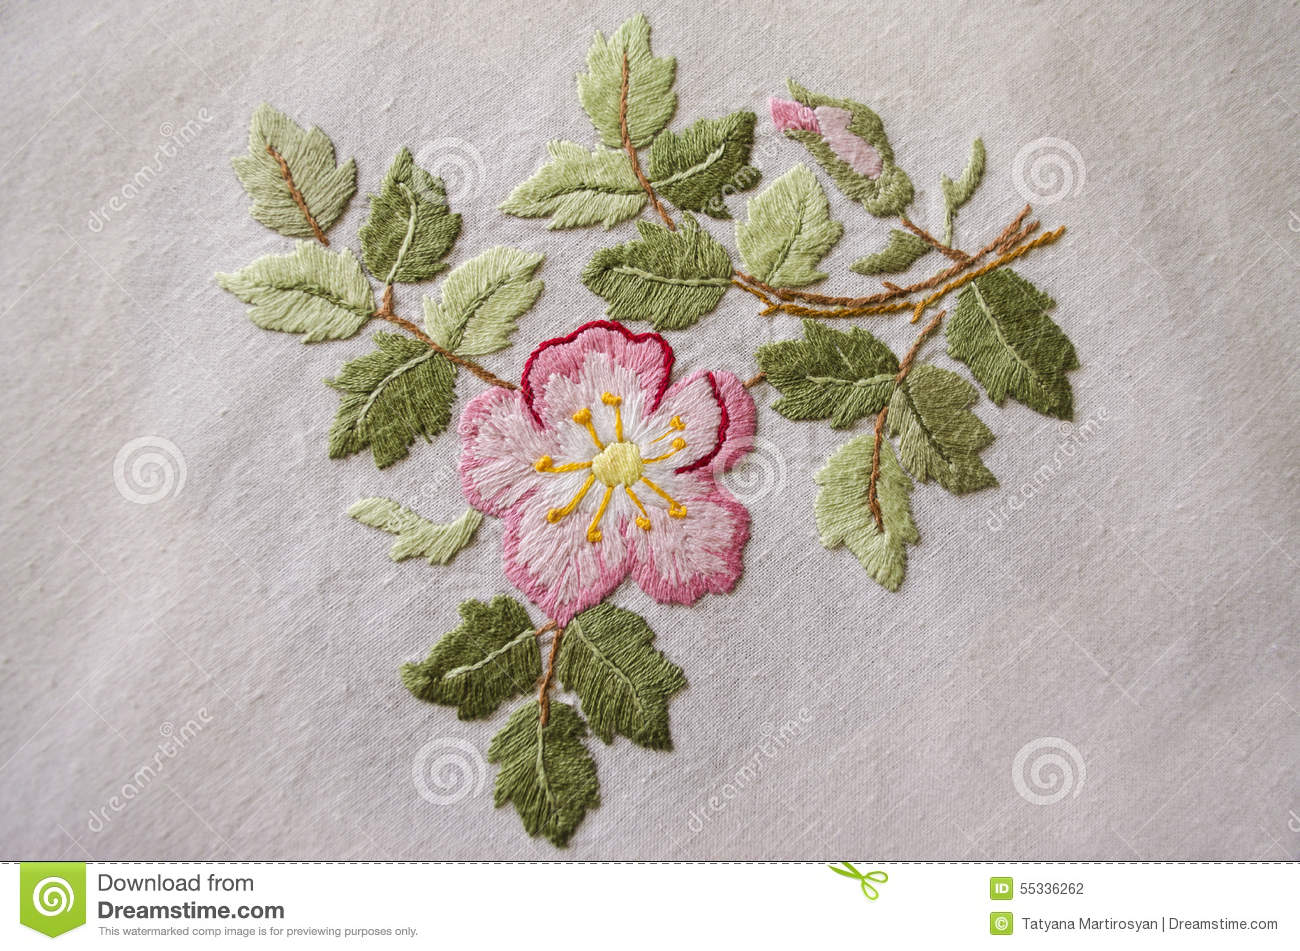 Embroidered Satin Stitch Pink Flower On Cotton Cloth Stock